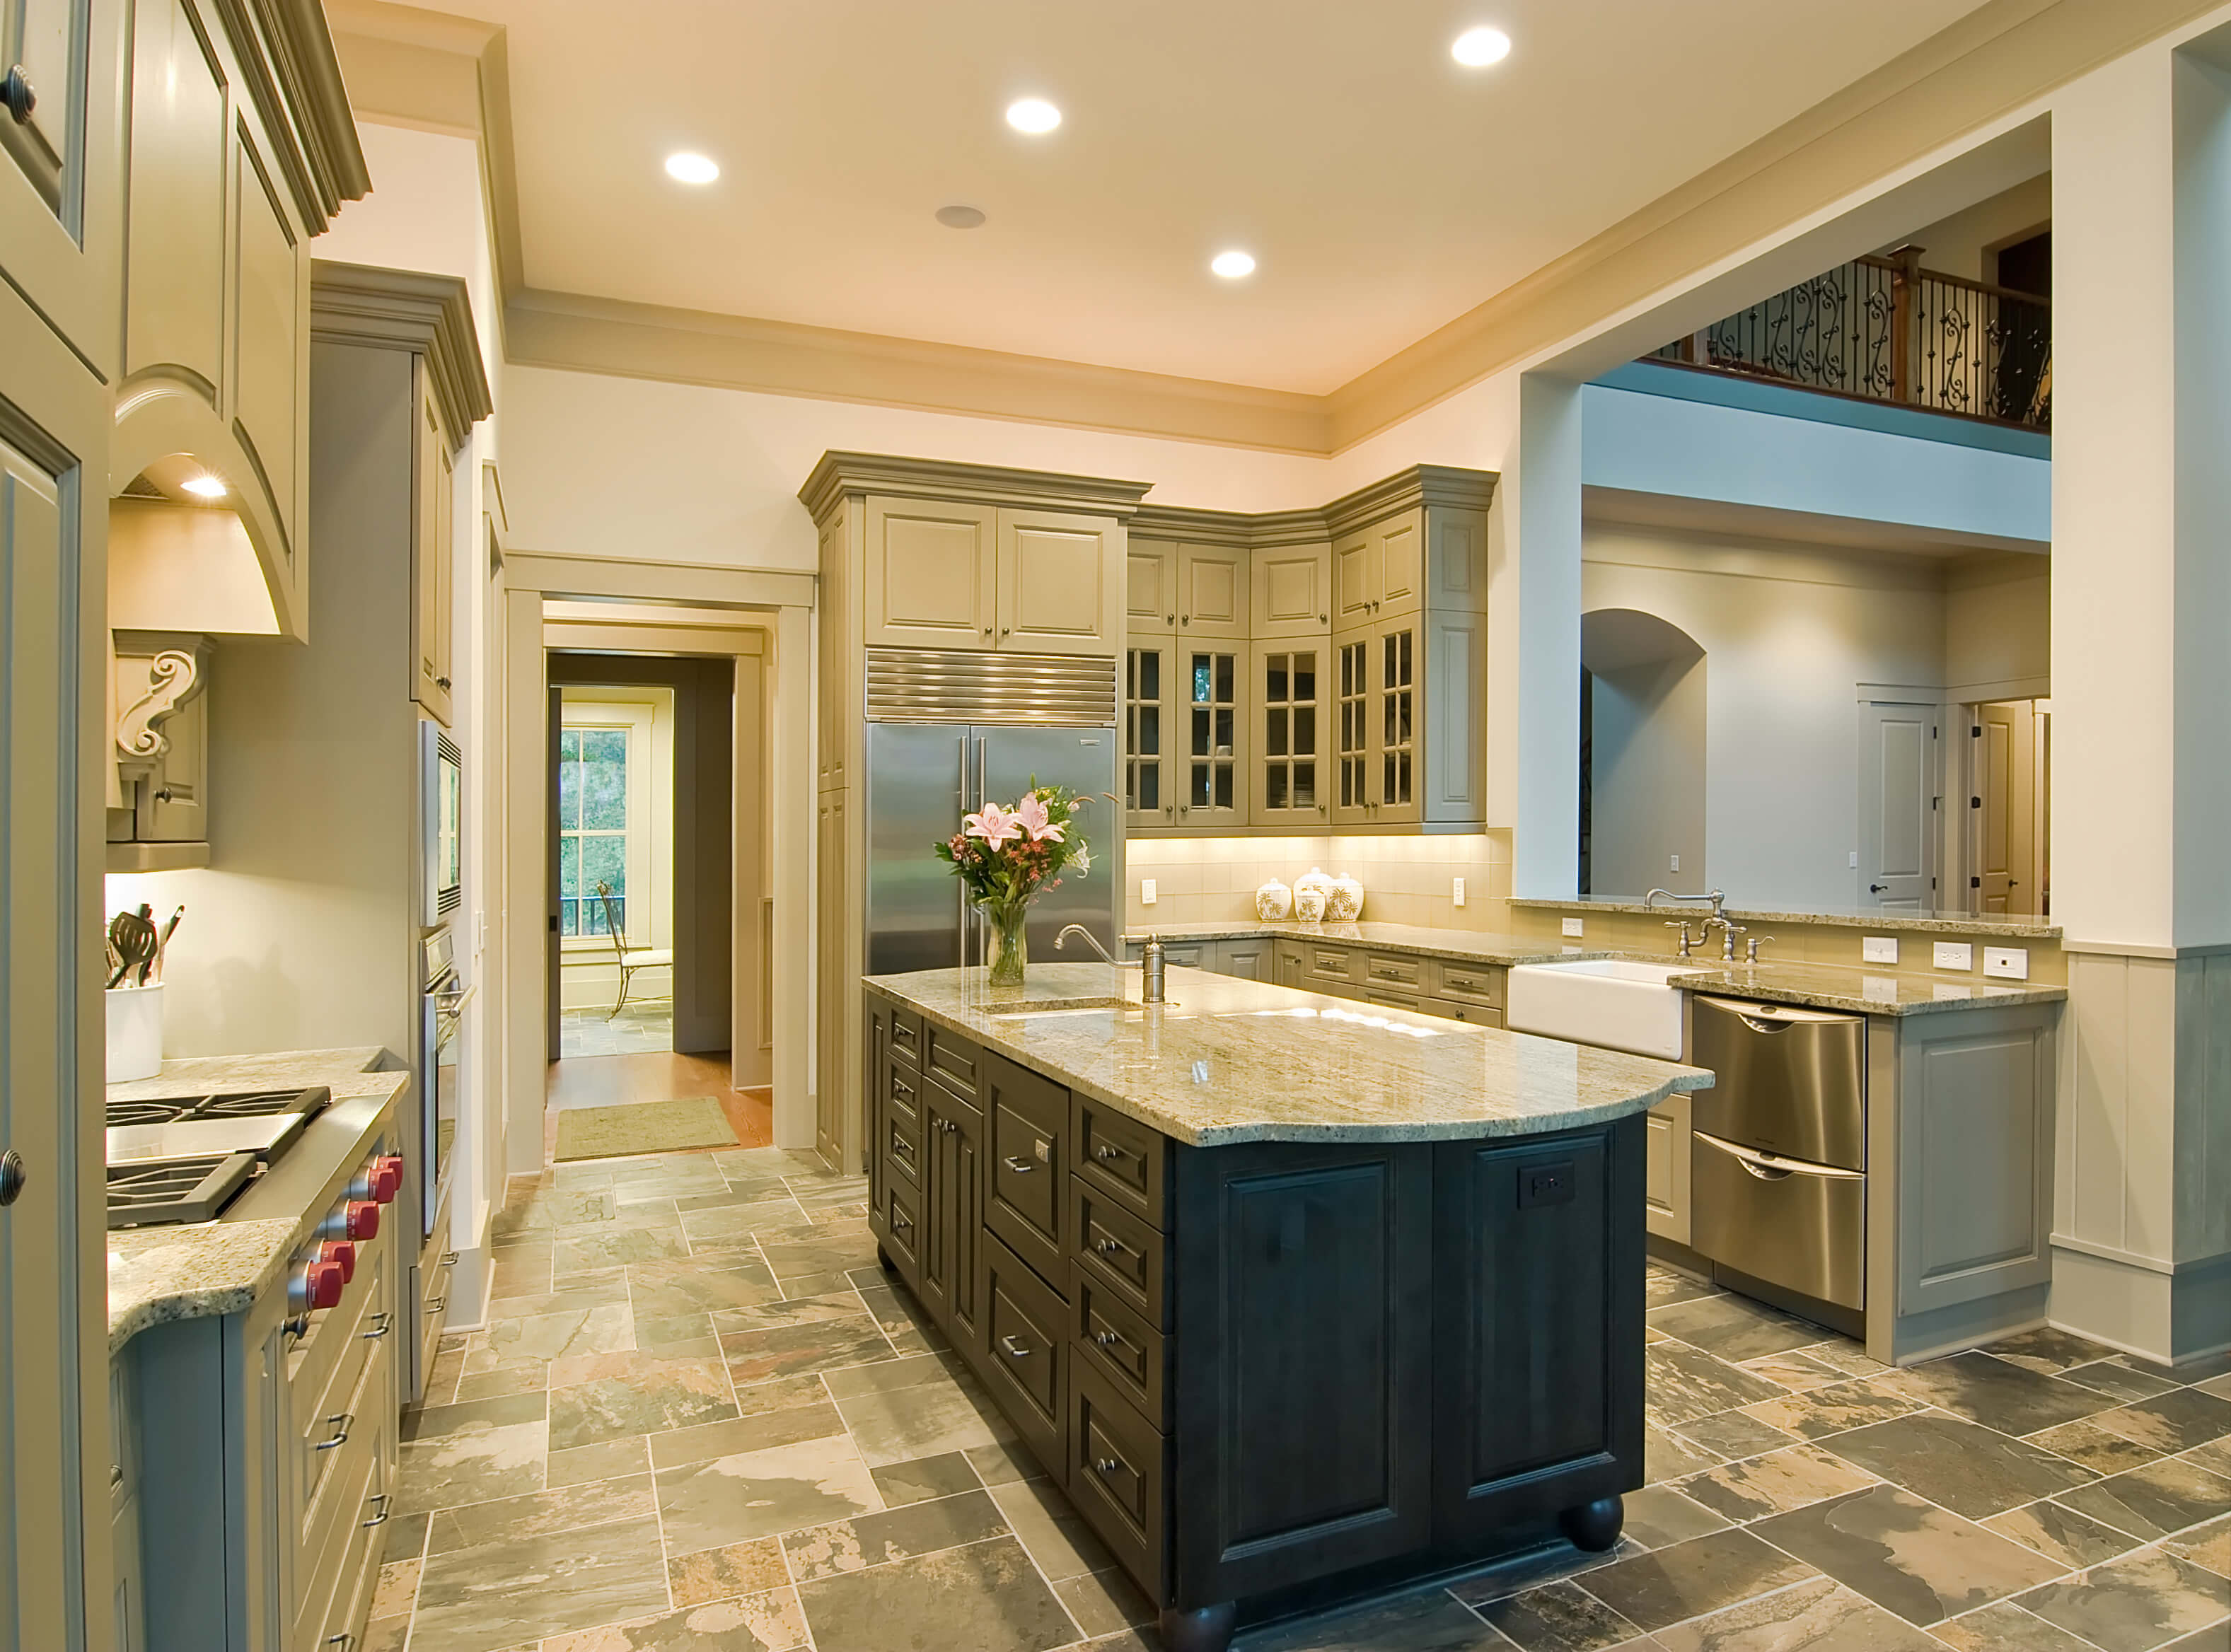 Use These Tips to Create a Stunning Kitchen